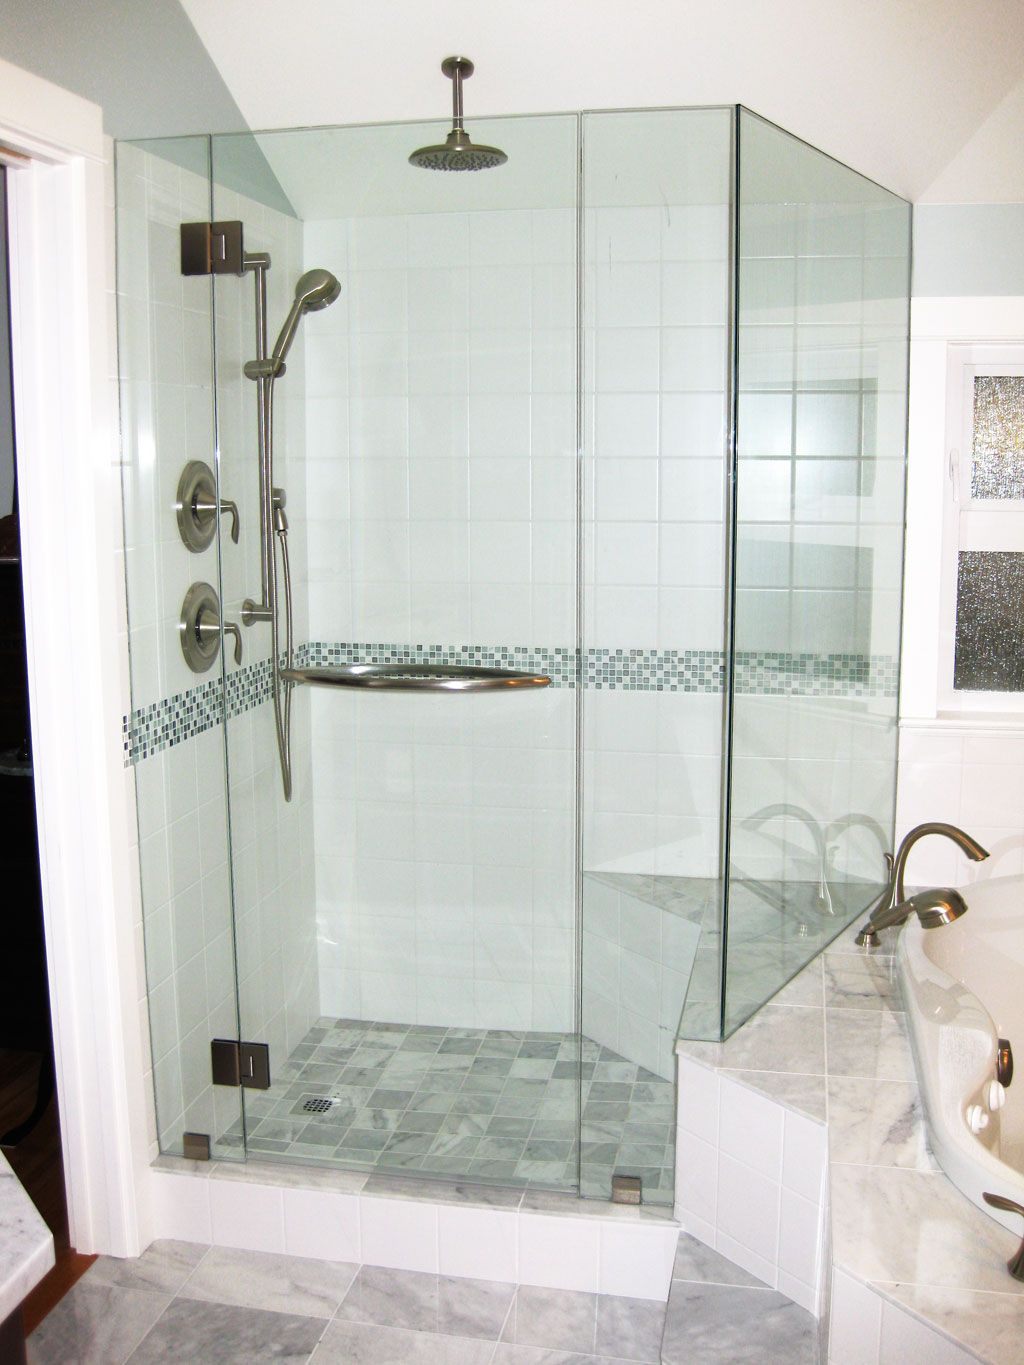 Picture gallery of our custom glass showers & bathrooms in Victoria ...